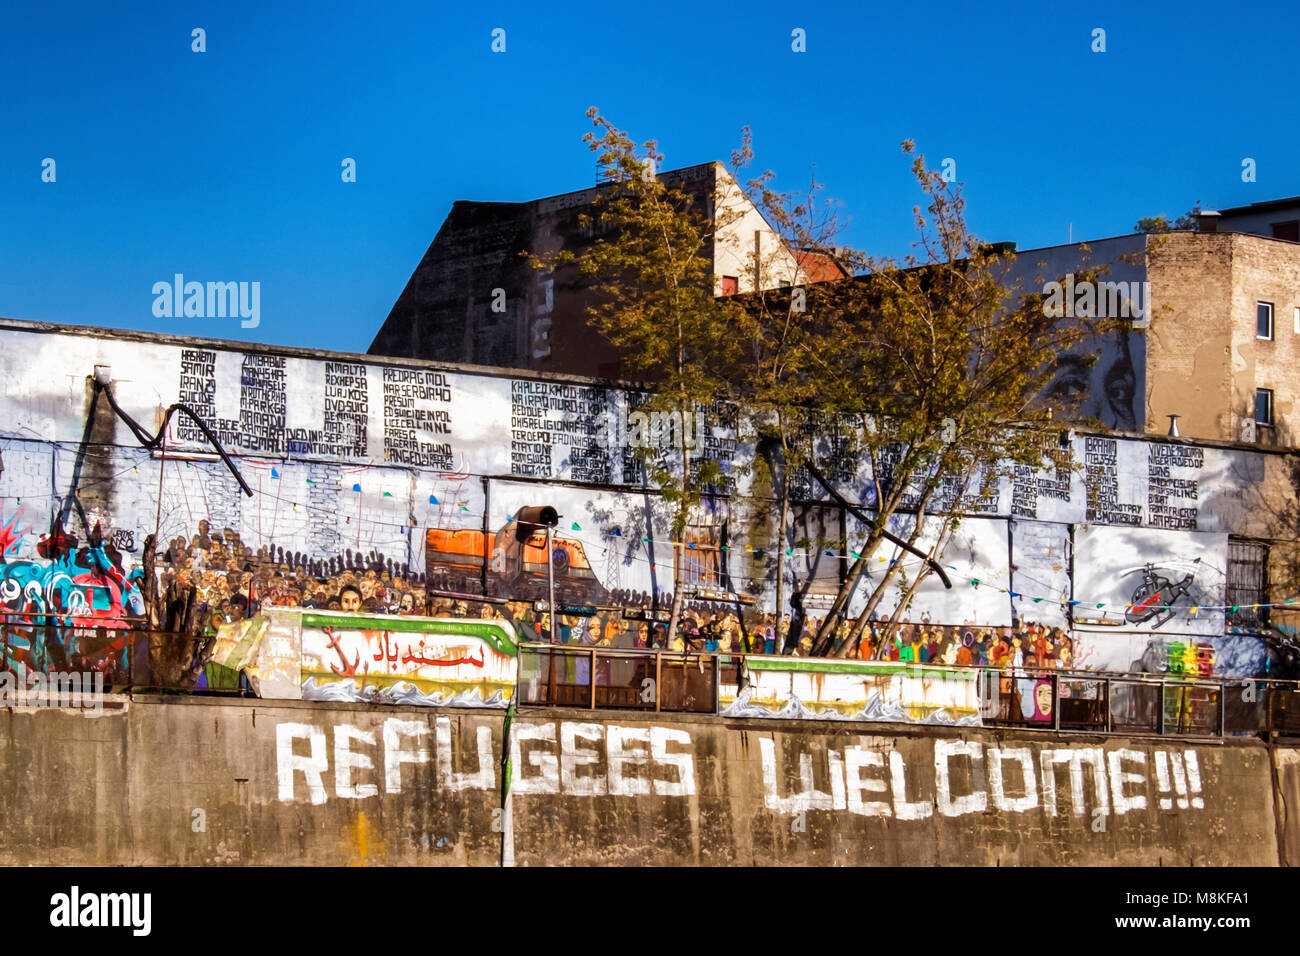 Berlin Friedrichshain.Refugees welcome sign and atrwork showing boat loaded with people next to Spree river, - Stock Image